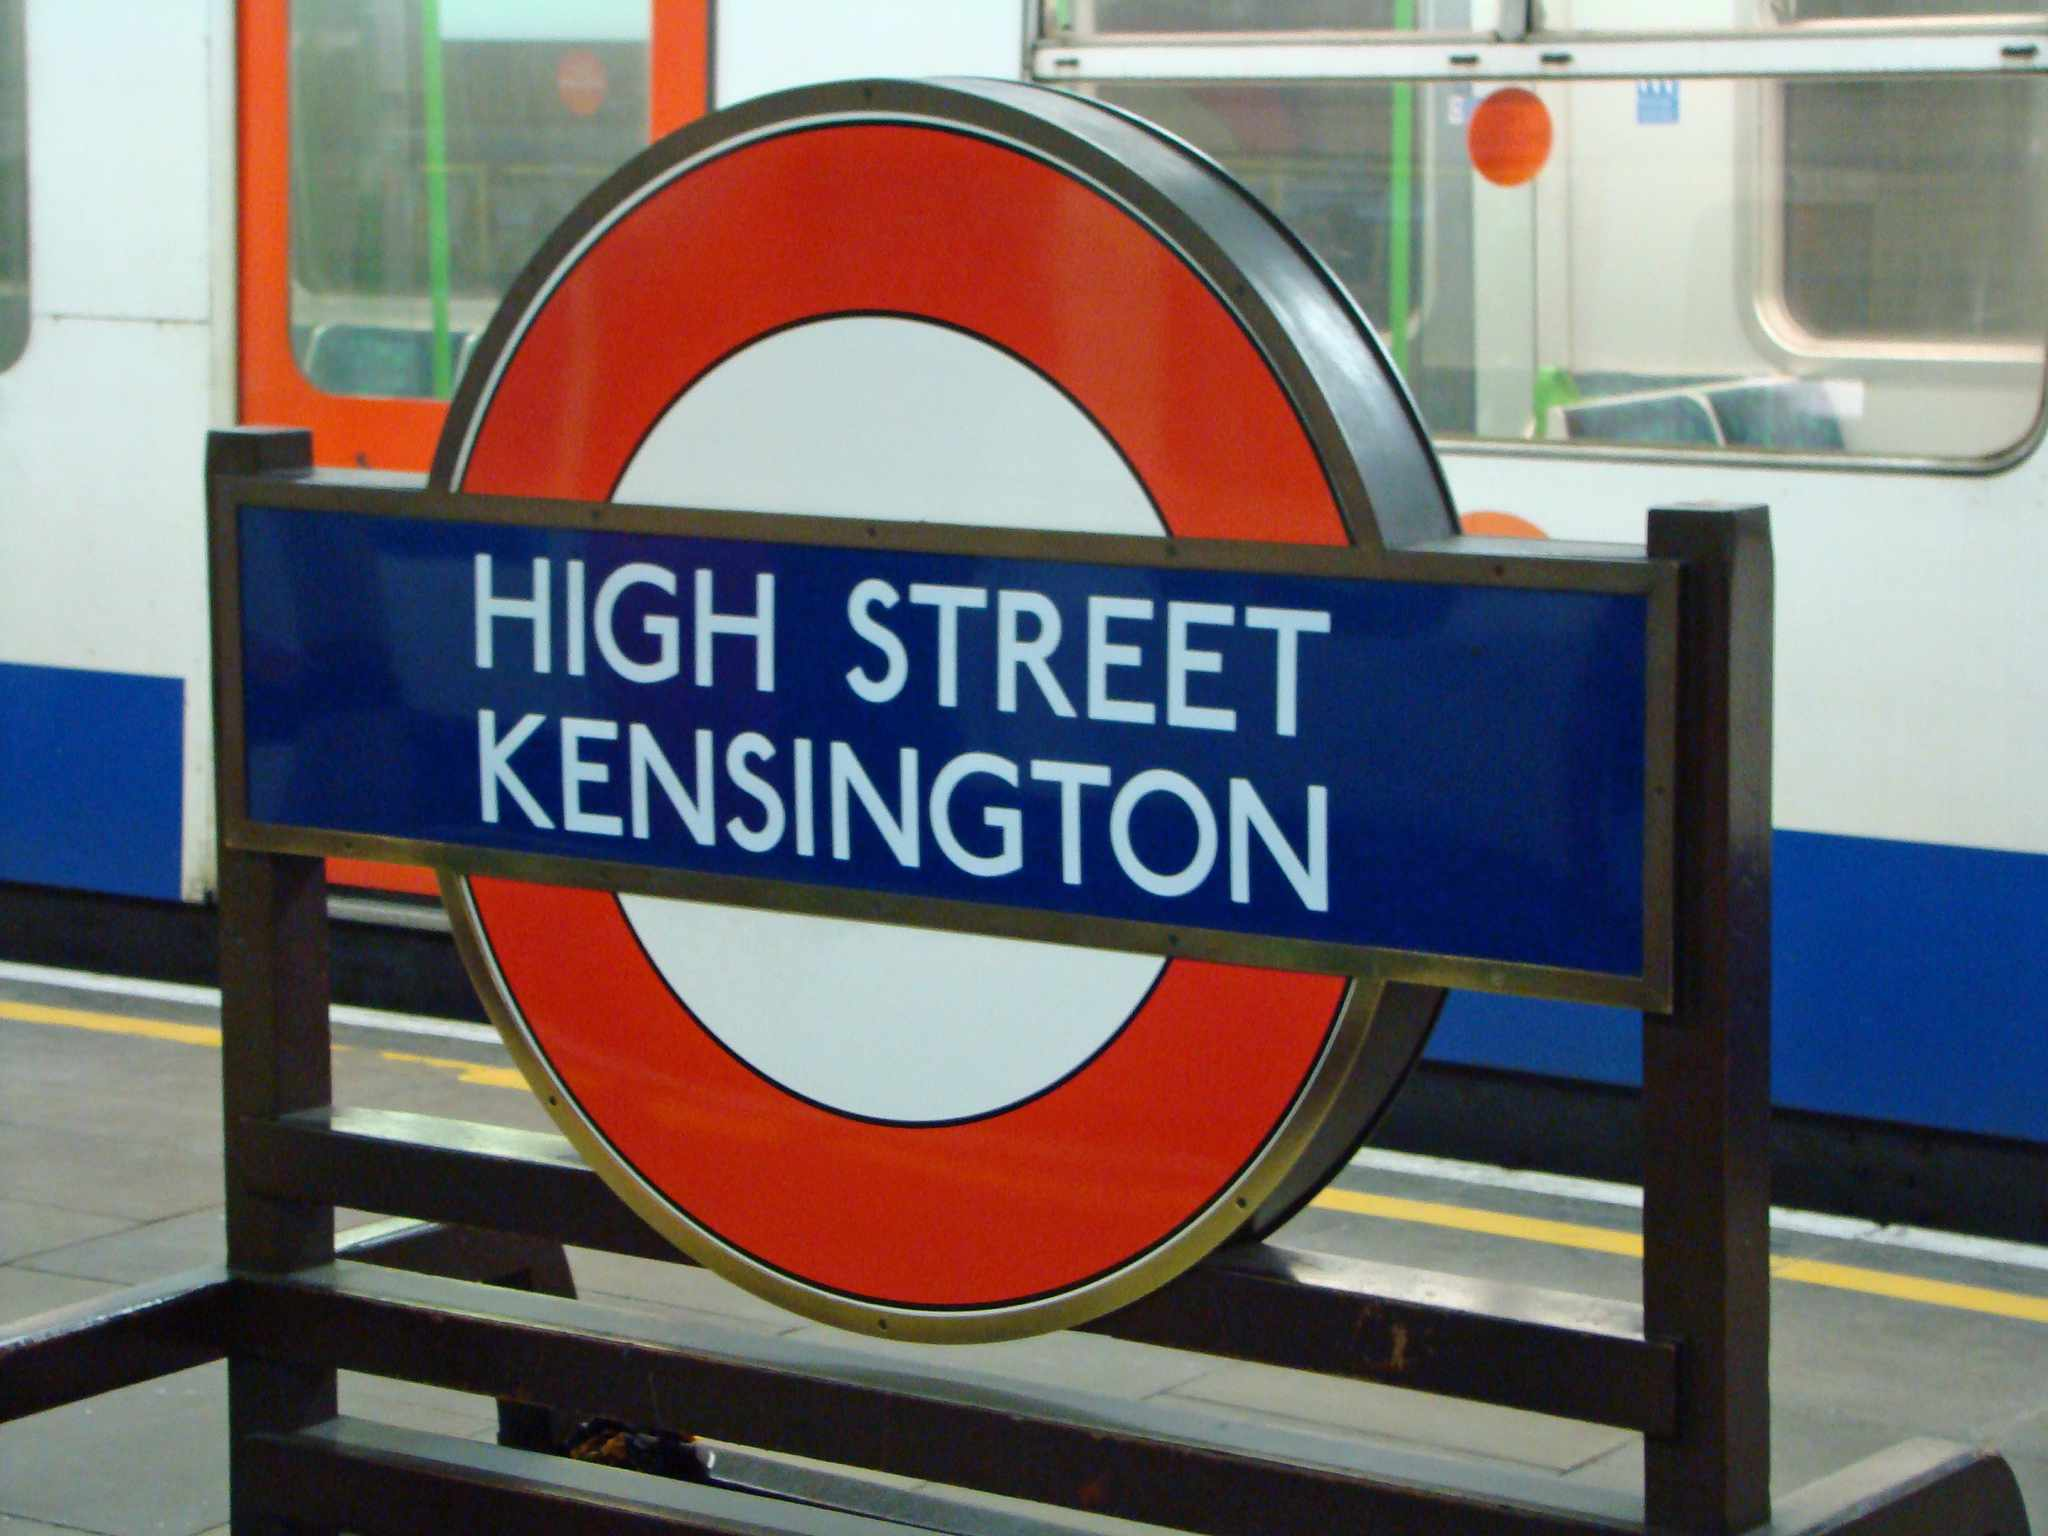 The London Underground offers economical travel through the city.